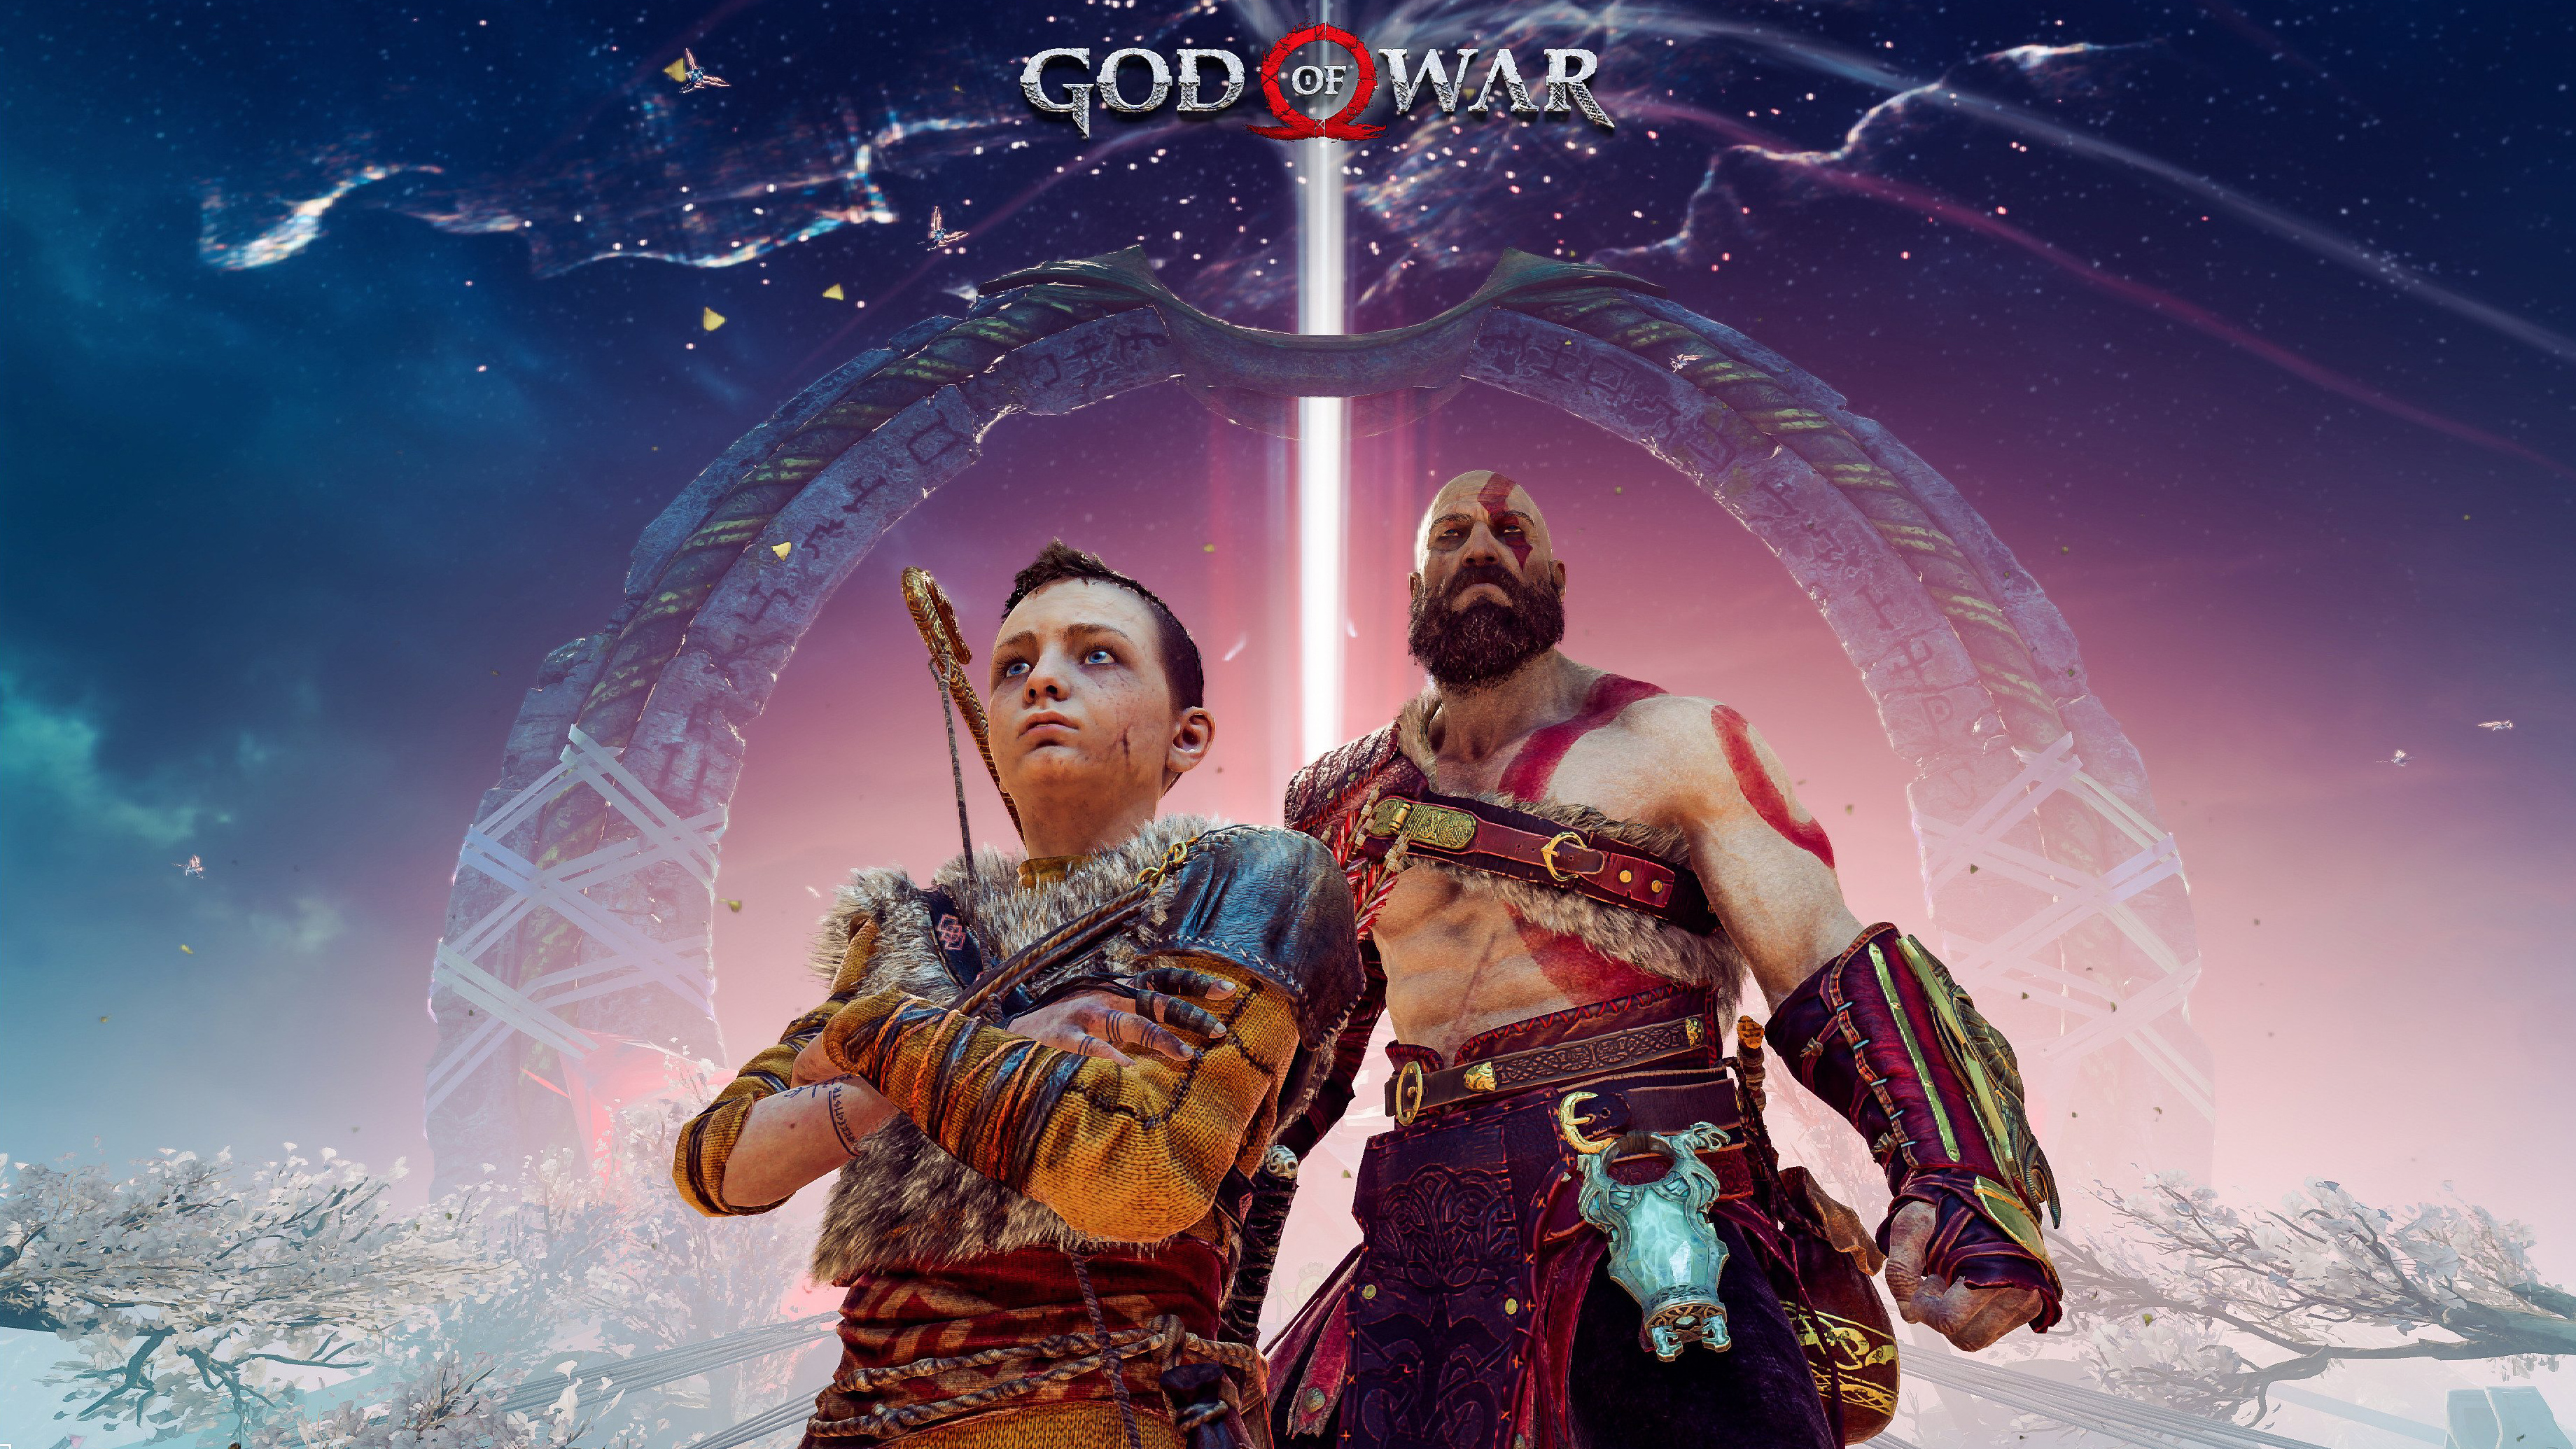 480x854 God Of War 4 Fanart 4k Android One Hd 4k Wallpapers